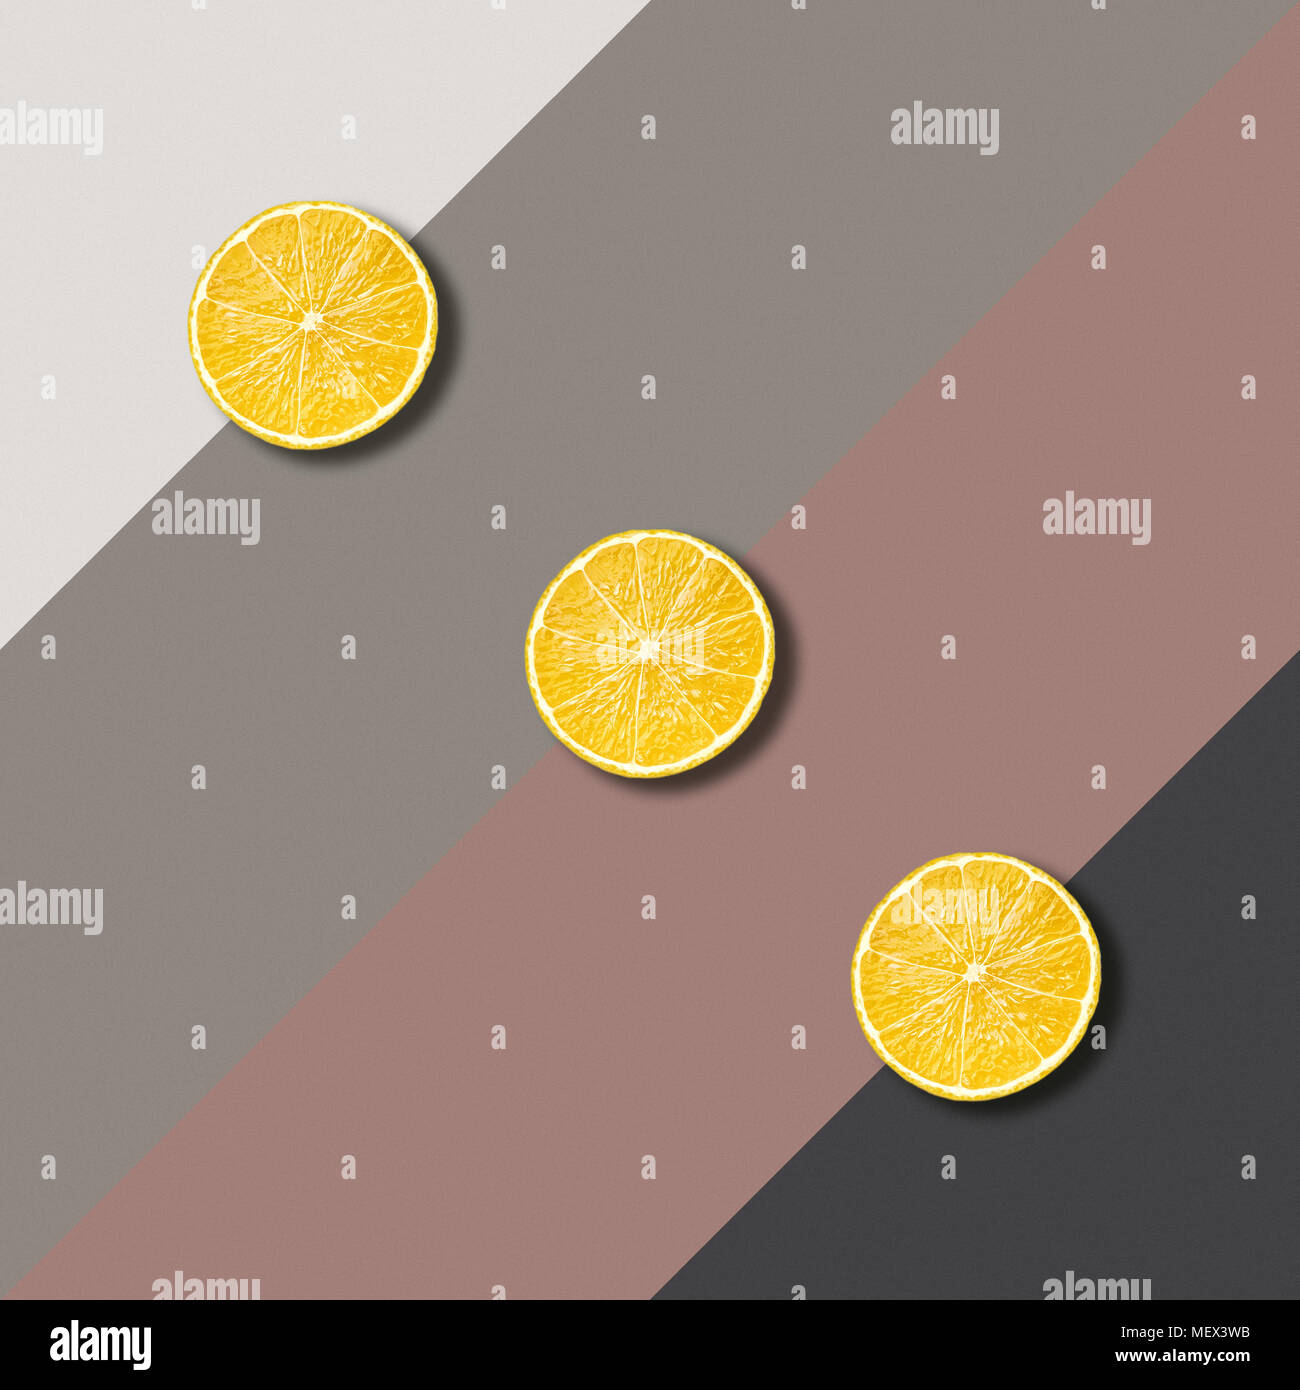 Abstract image with three lemon slices on color background, minimalist geometric food photography - Stock Image